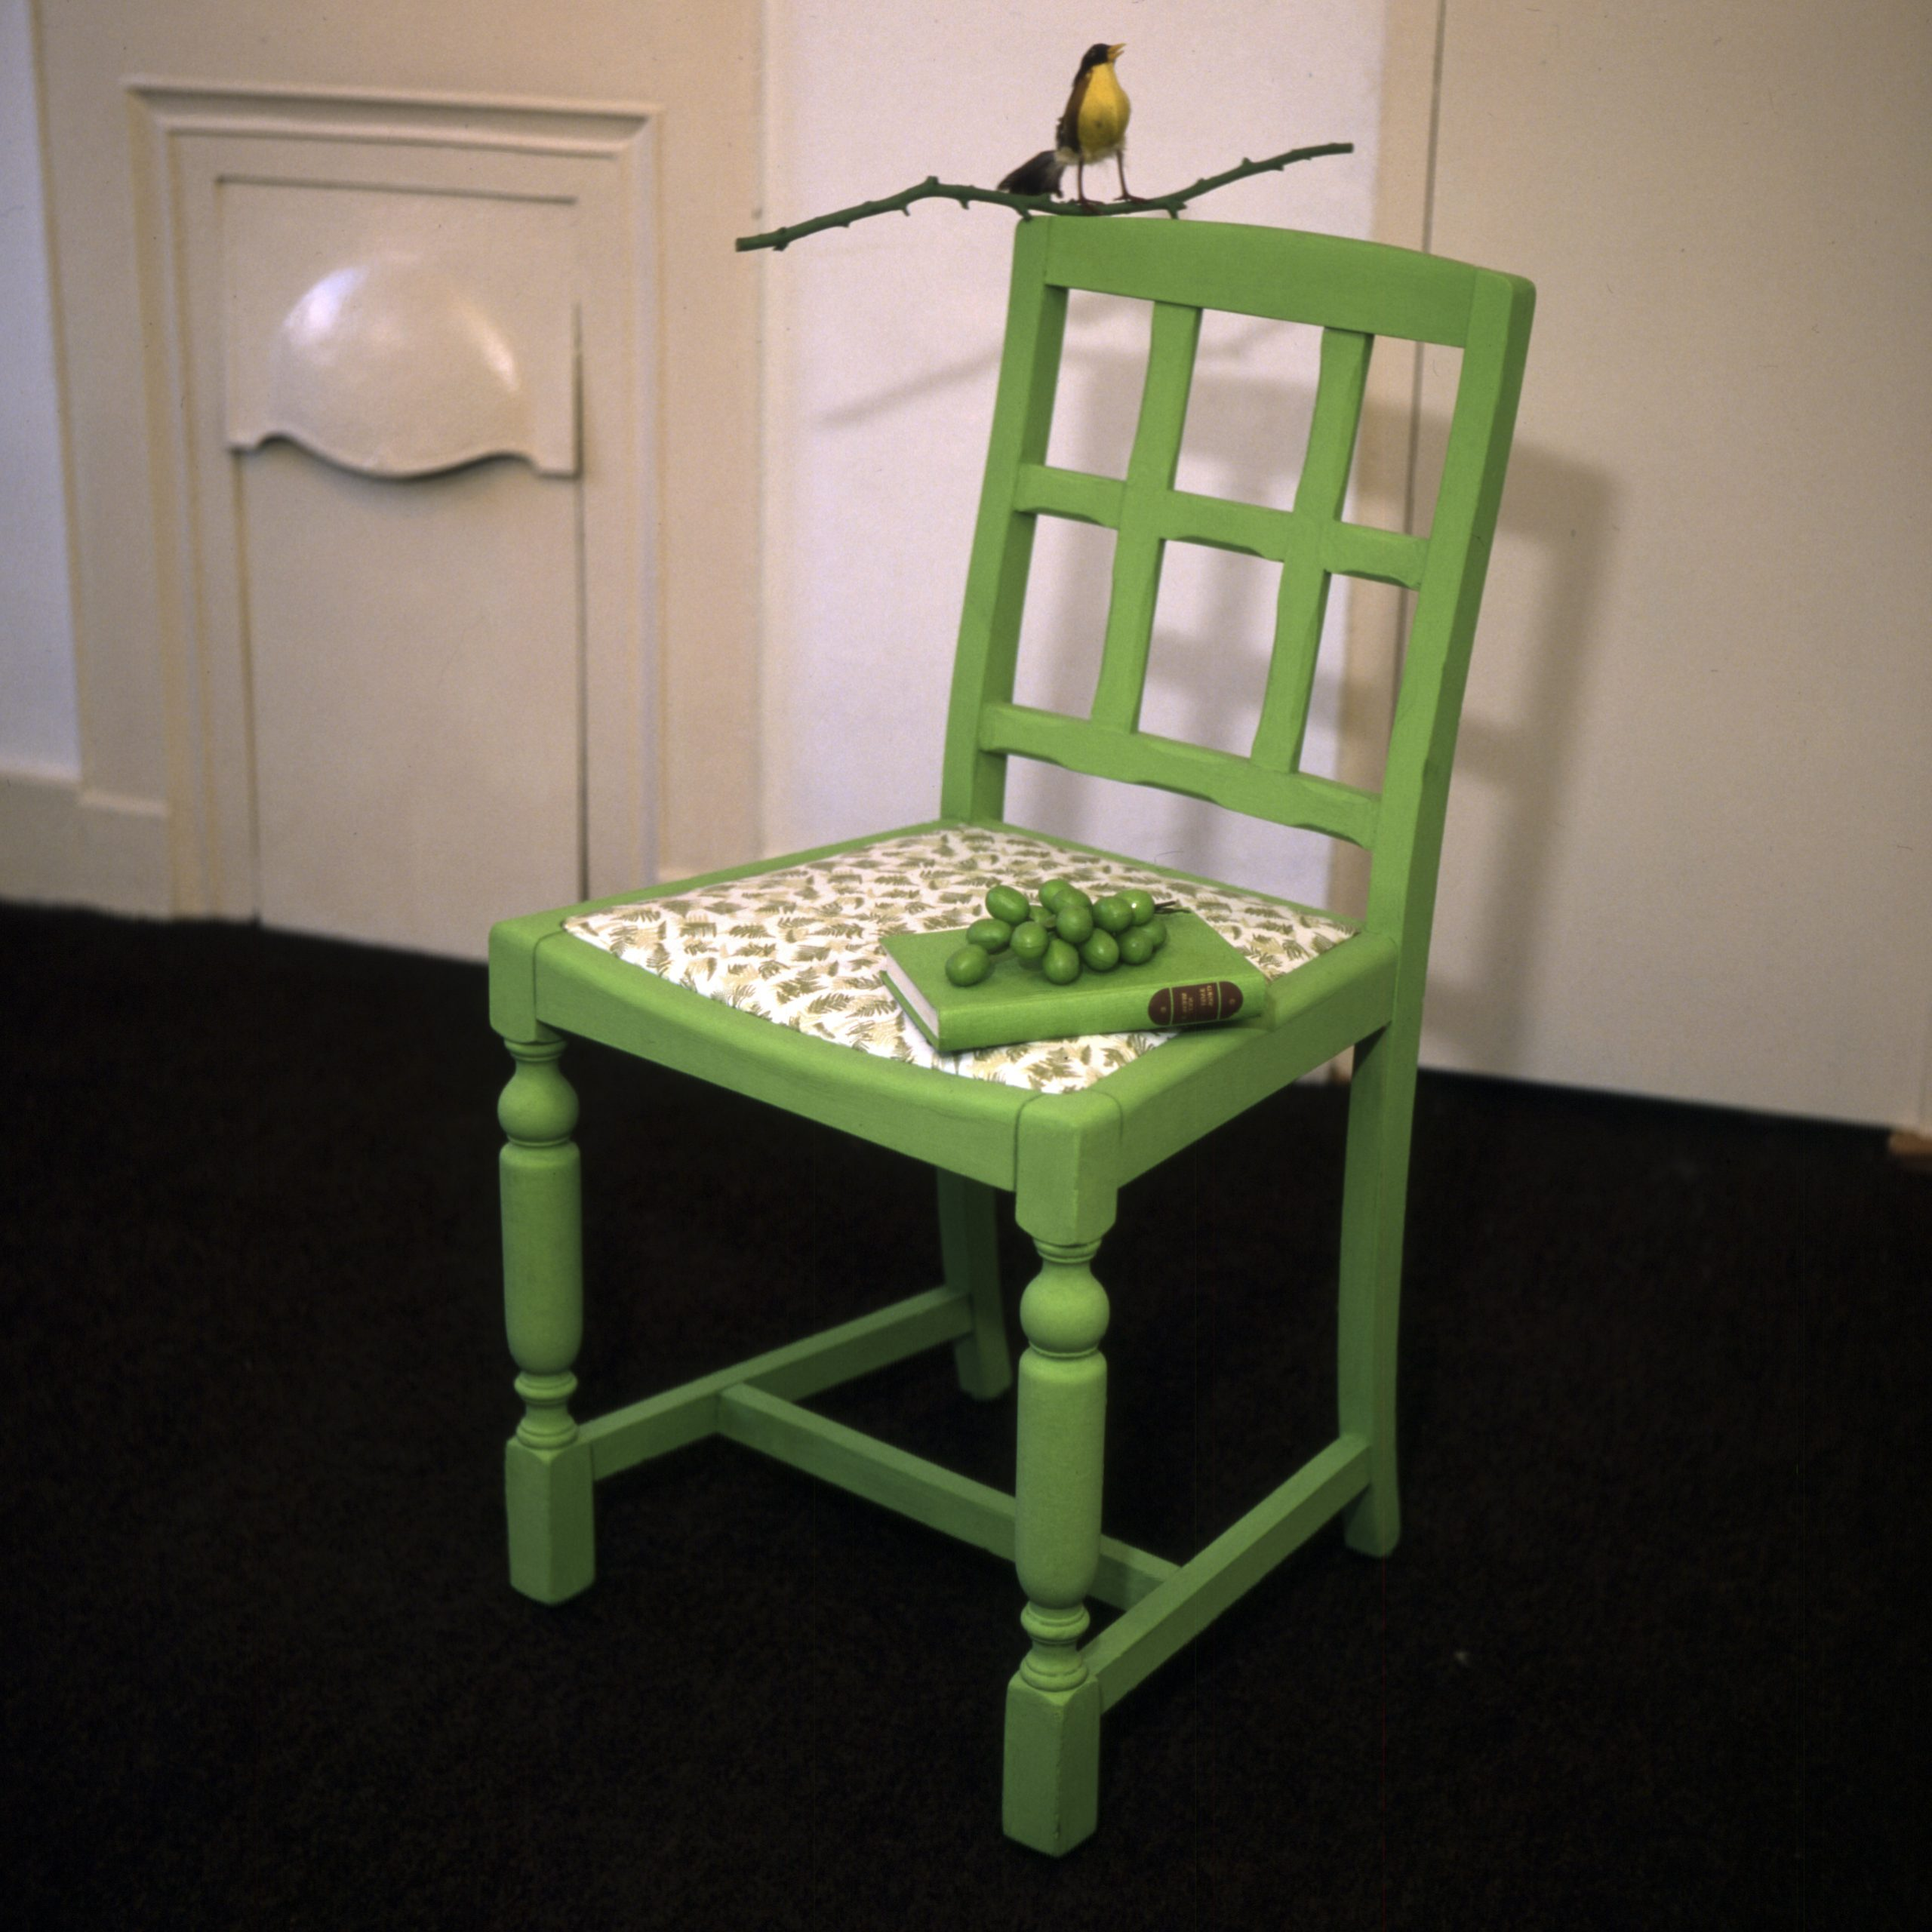 a green chair with a bird perched